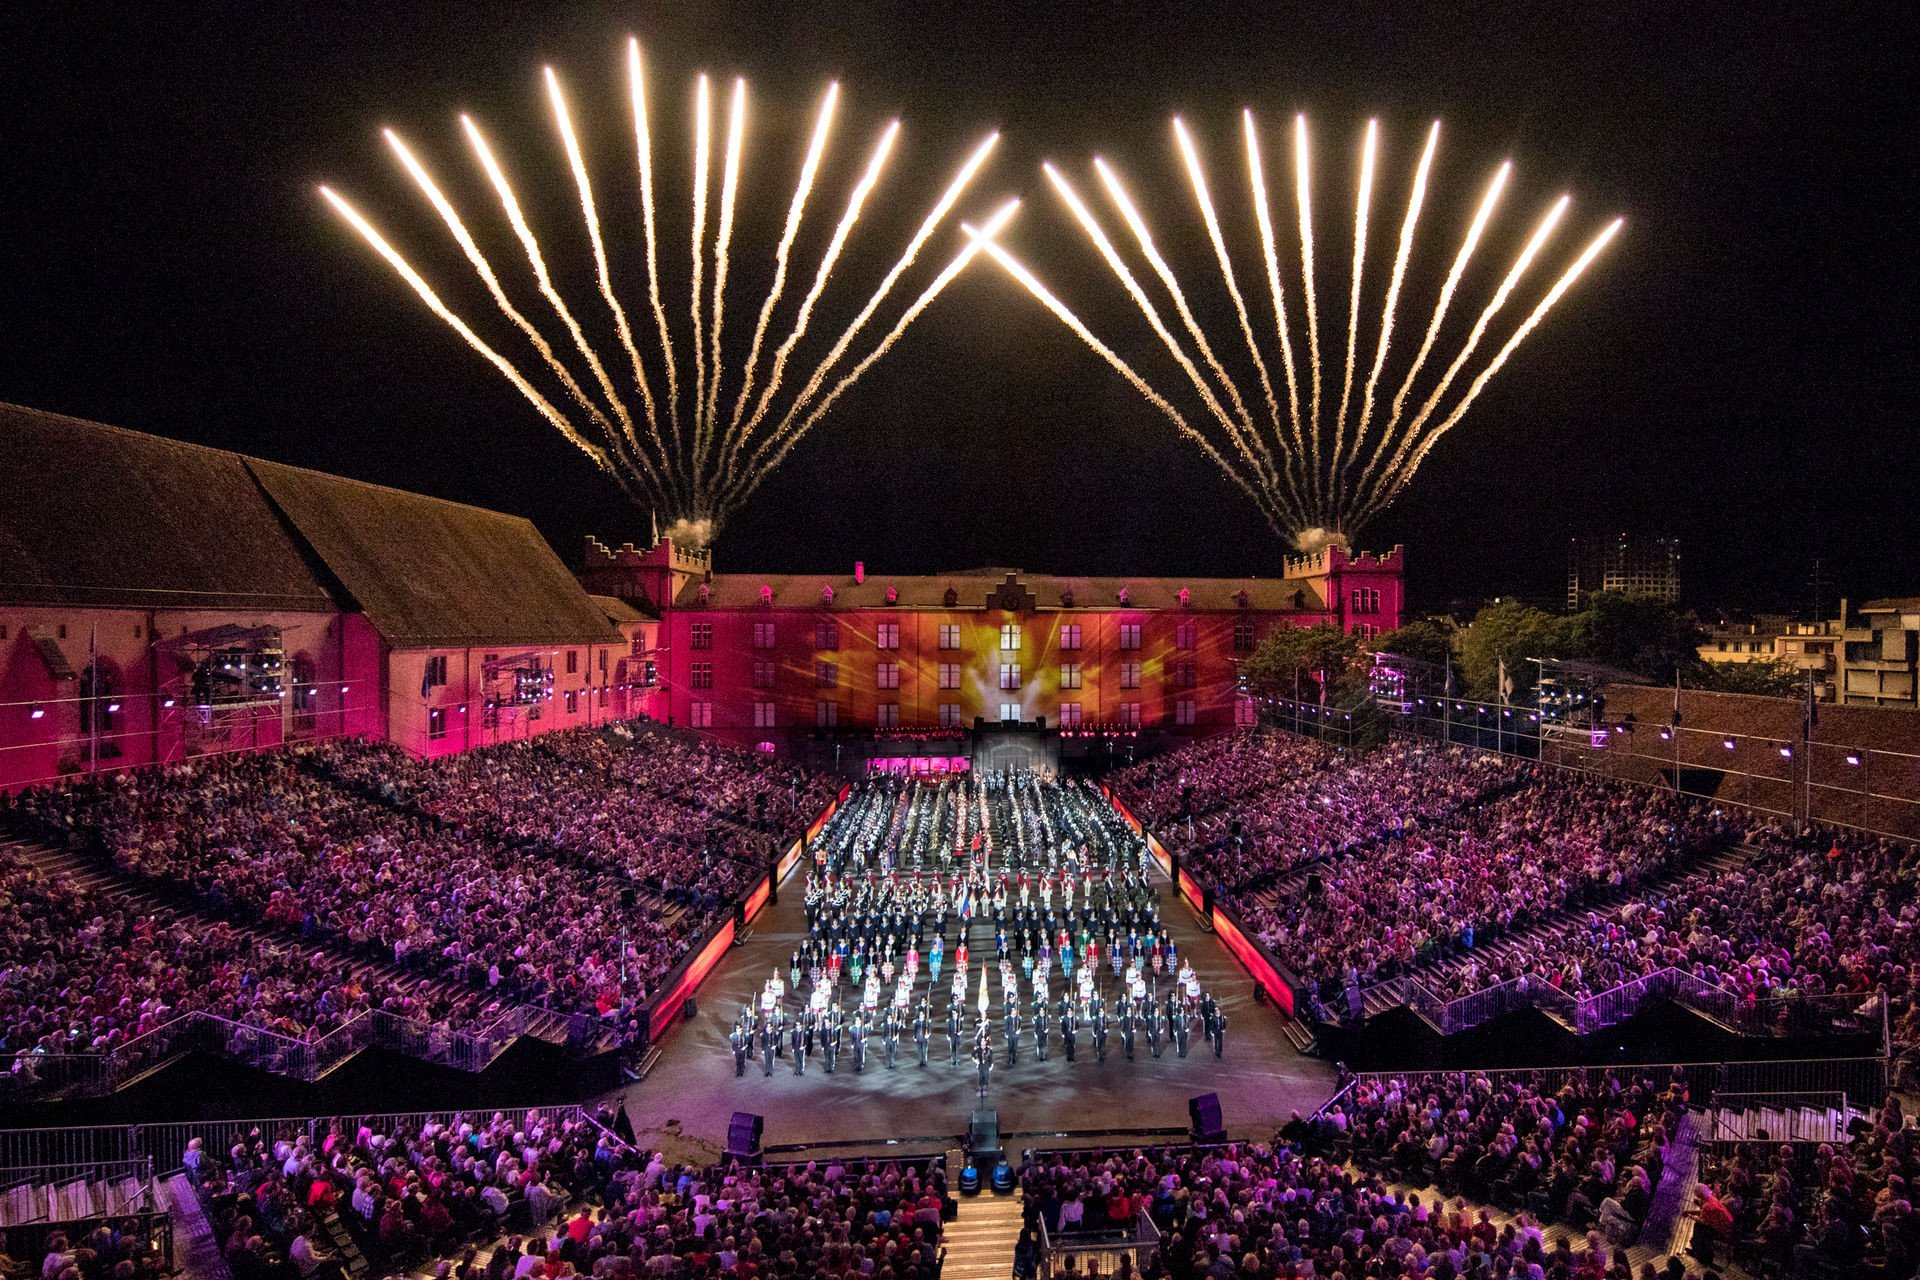 The Cast of the Basel Tattoo 2017,  preforms on stage during the Final of the premiere for the Basel Tattoo, Friday, 21. July 2017, at the Barracks in Basel, Switzerland. The Basel Tattoo is a military music festival held from 21 to 29 July 2017 in the city of Basel. (PRESSEBILDER/Patrick Straub)